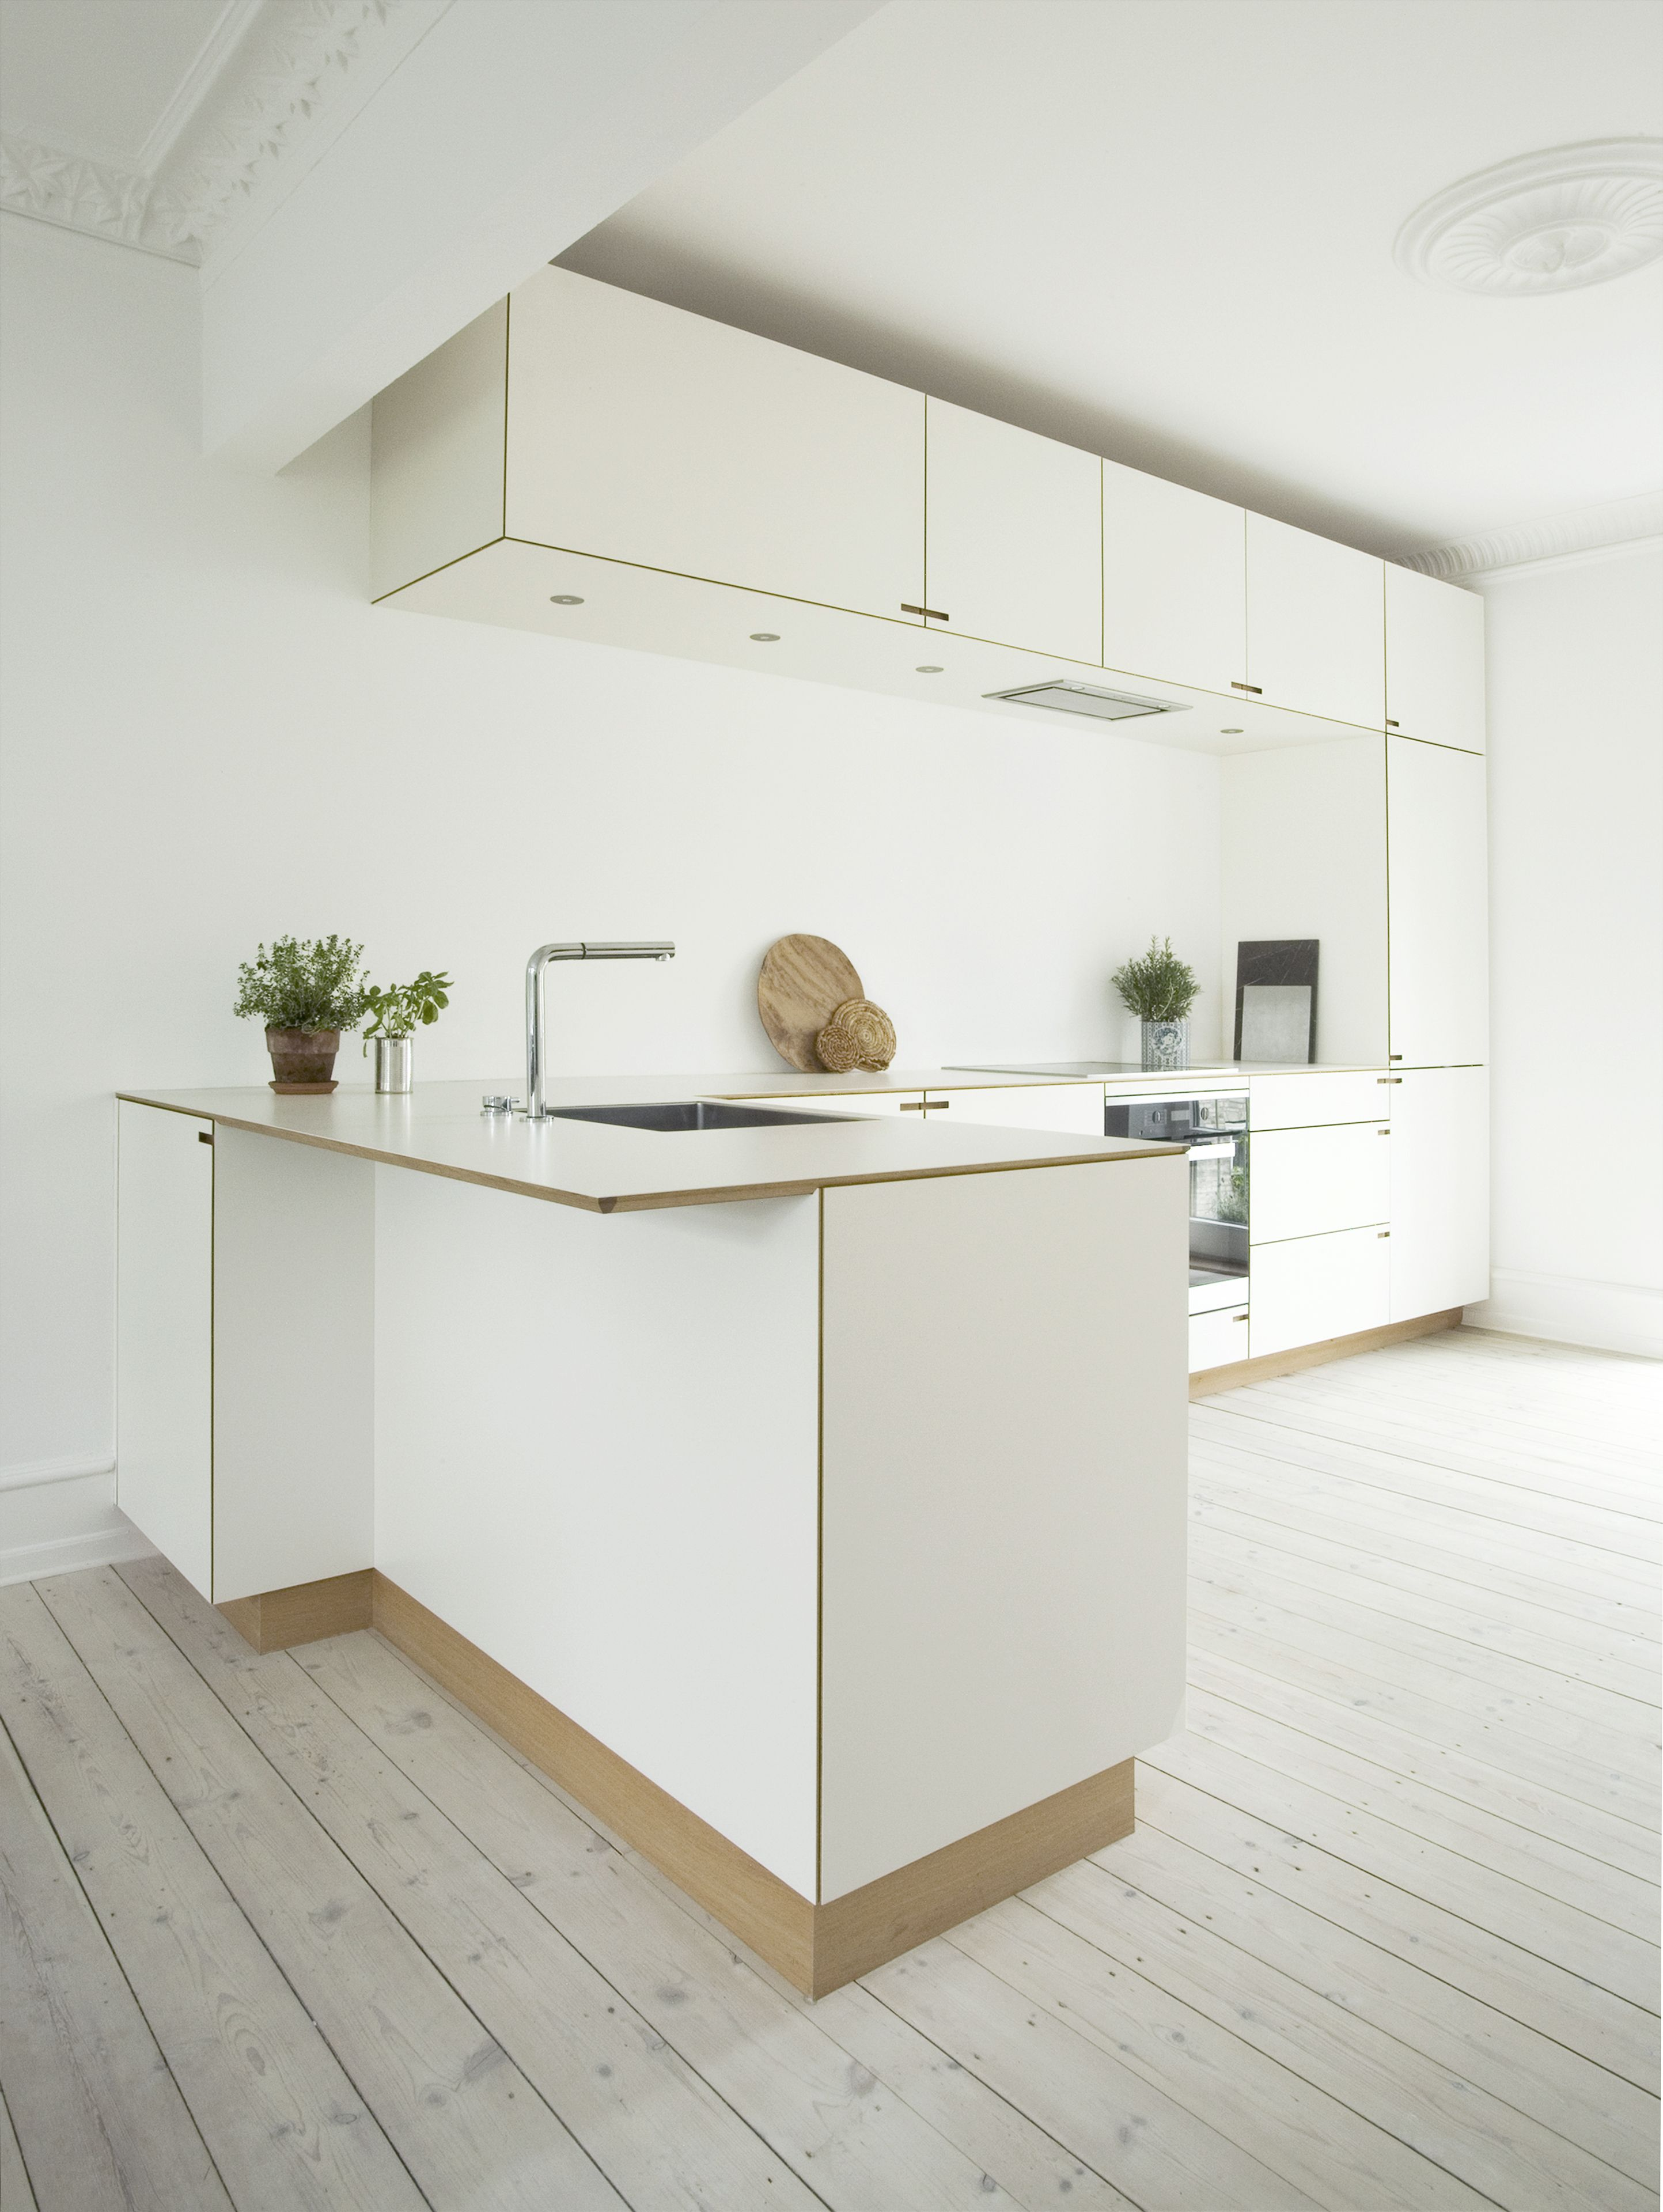 The sink is placed on the kitchen peninsula with its wide